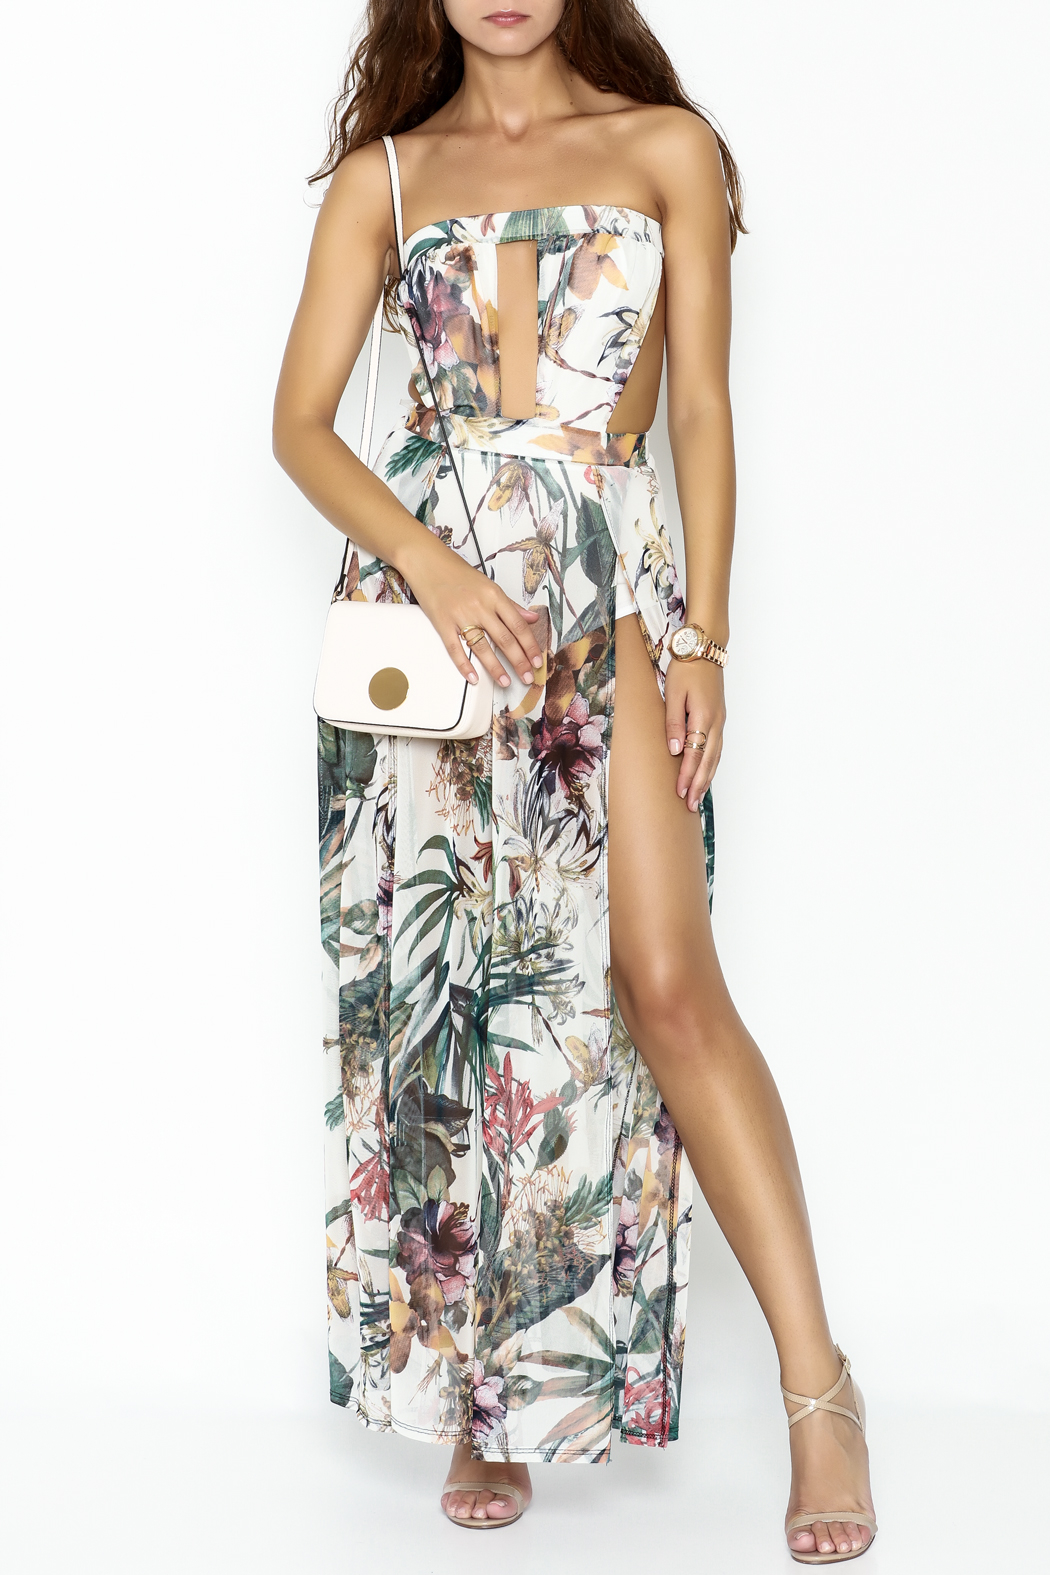 day and night Floral Dress Romper - Main Image